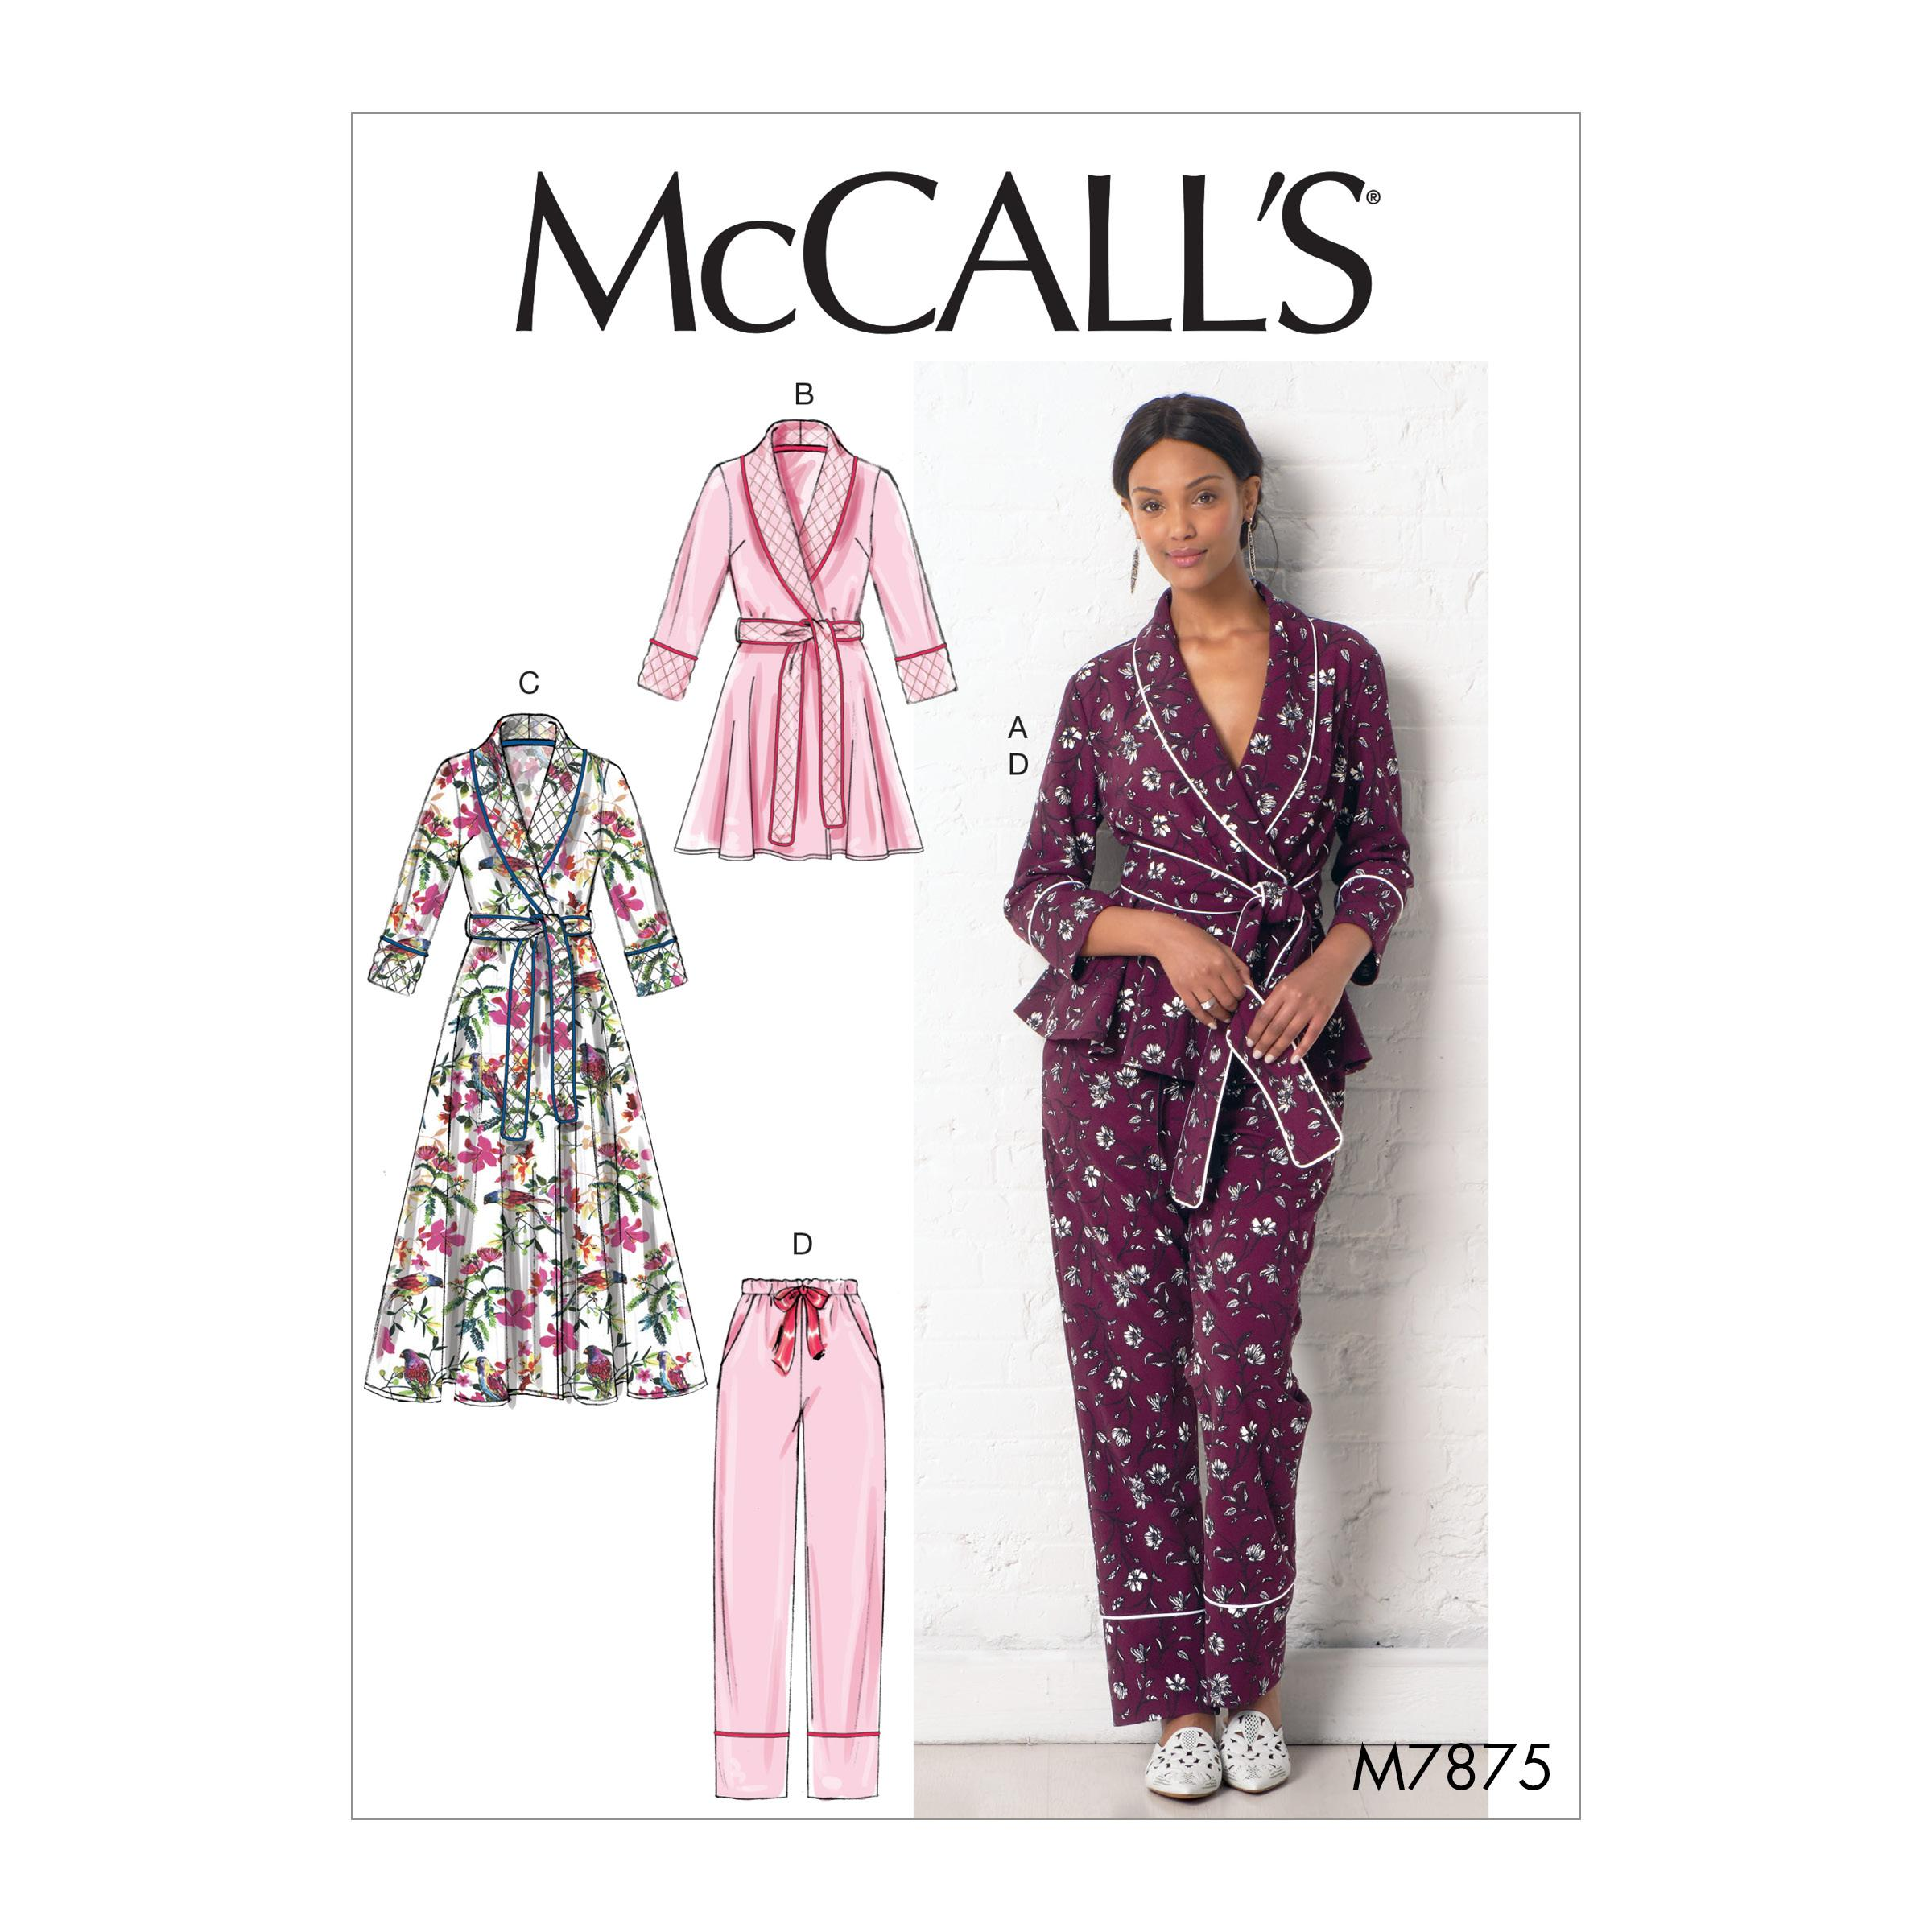 McCalls M7875 Misses Jackets & Vests, Misses Pants, Jumpsuits & Shorts, Misses Coordinates